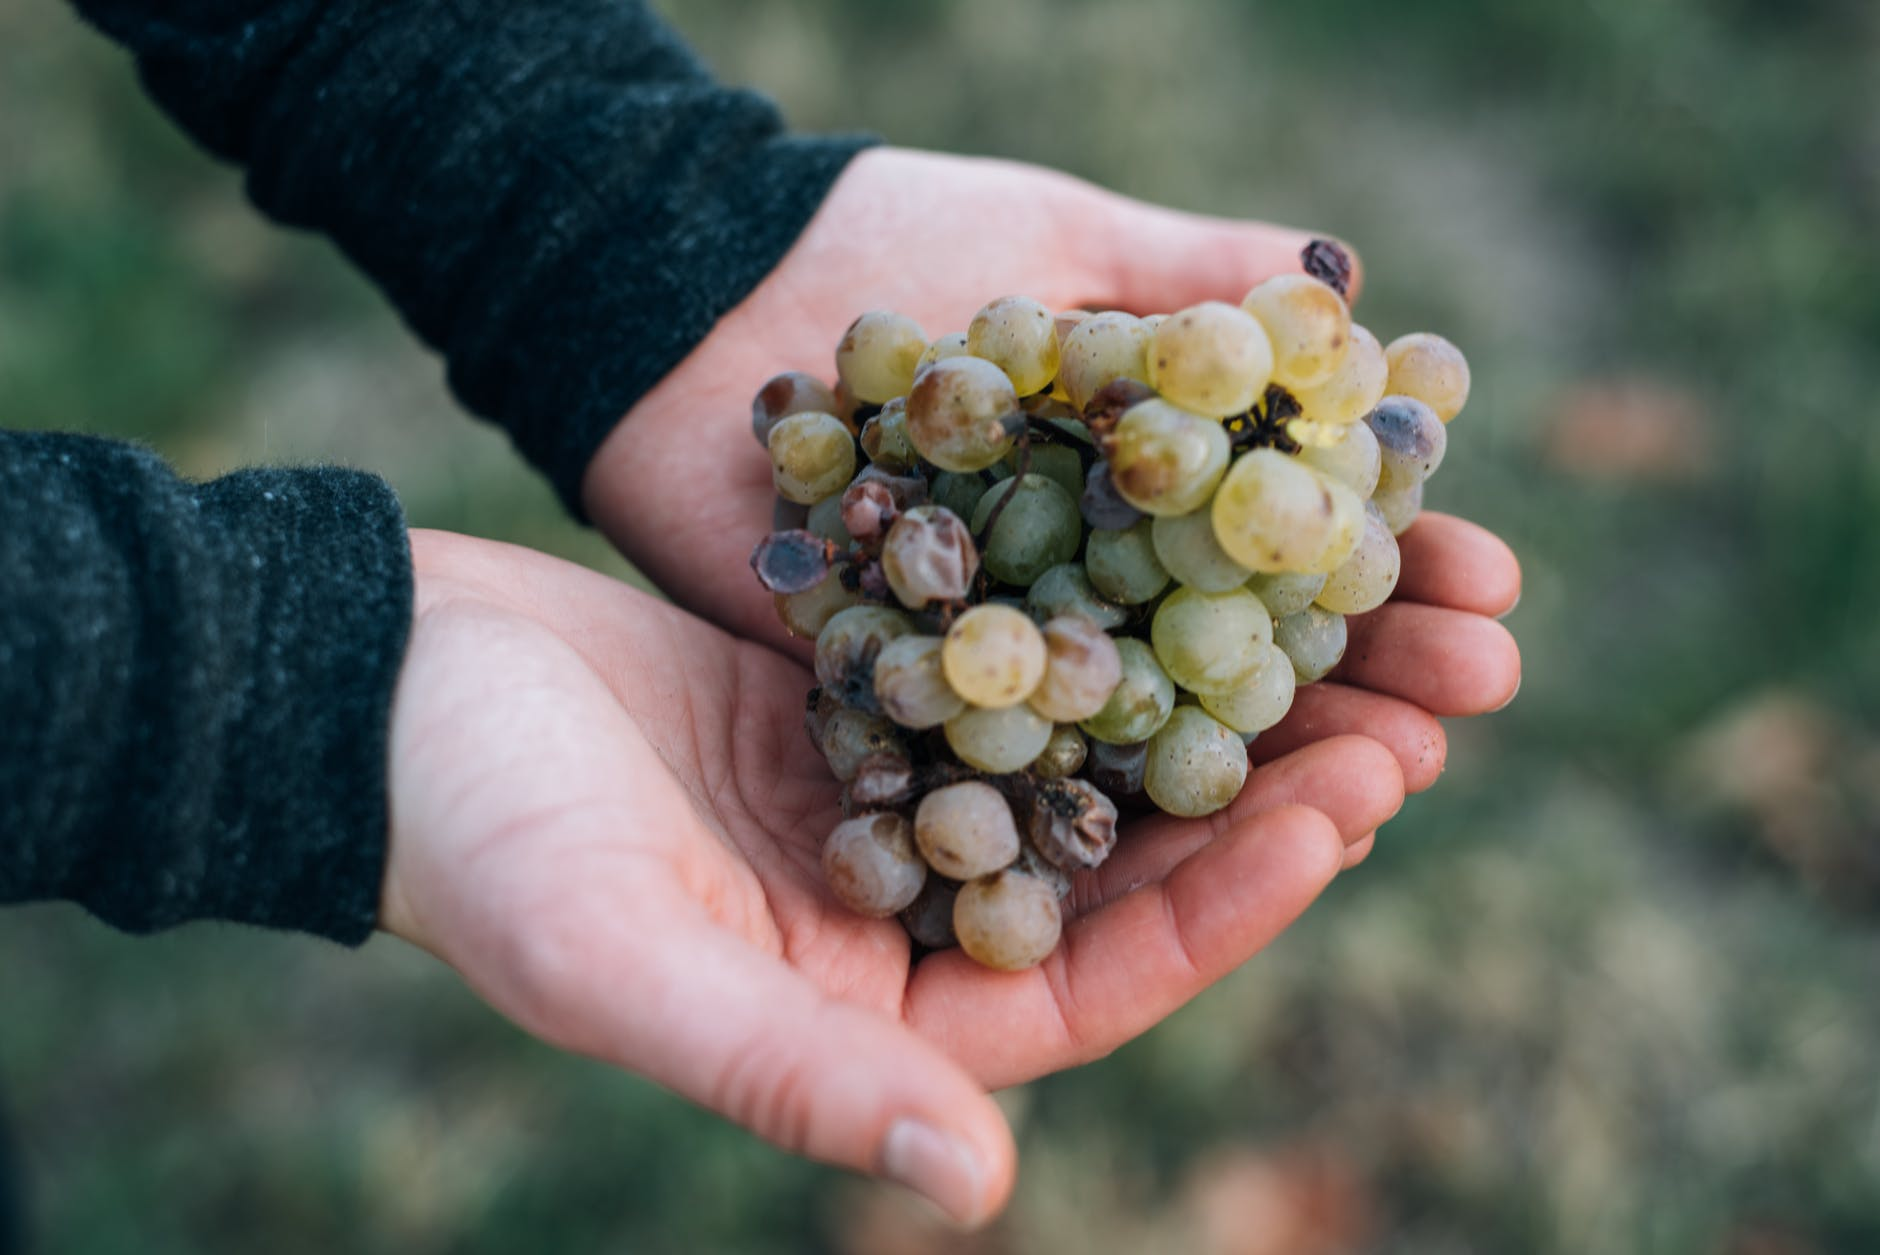 crop gardener showing handful of grapes -  vendemmia - vinificazione in bianco